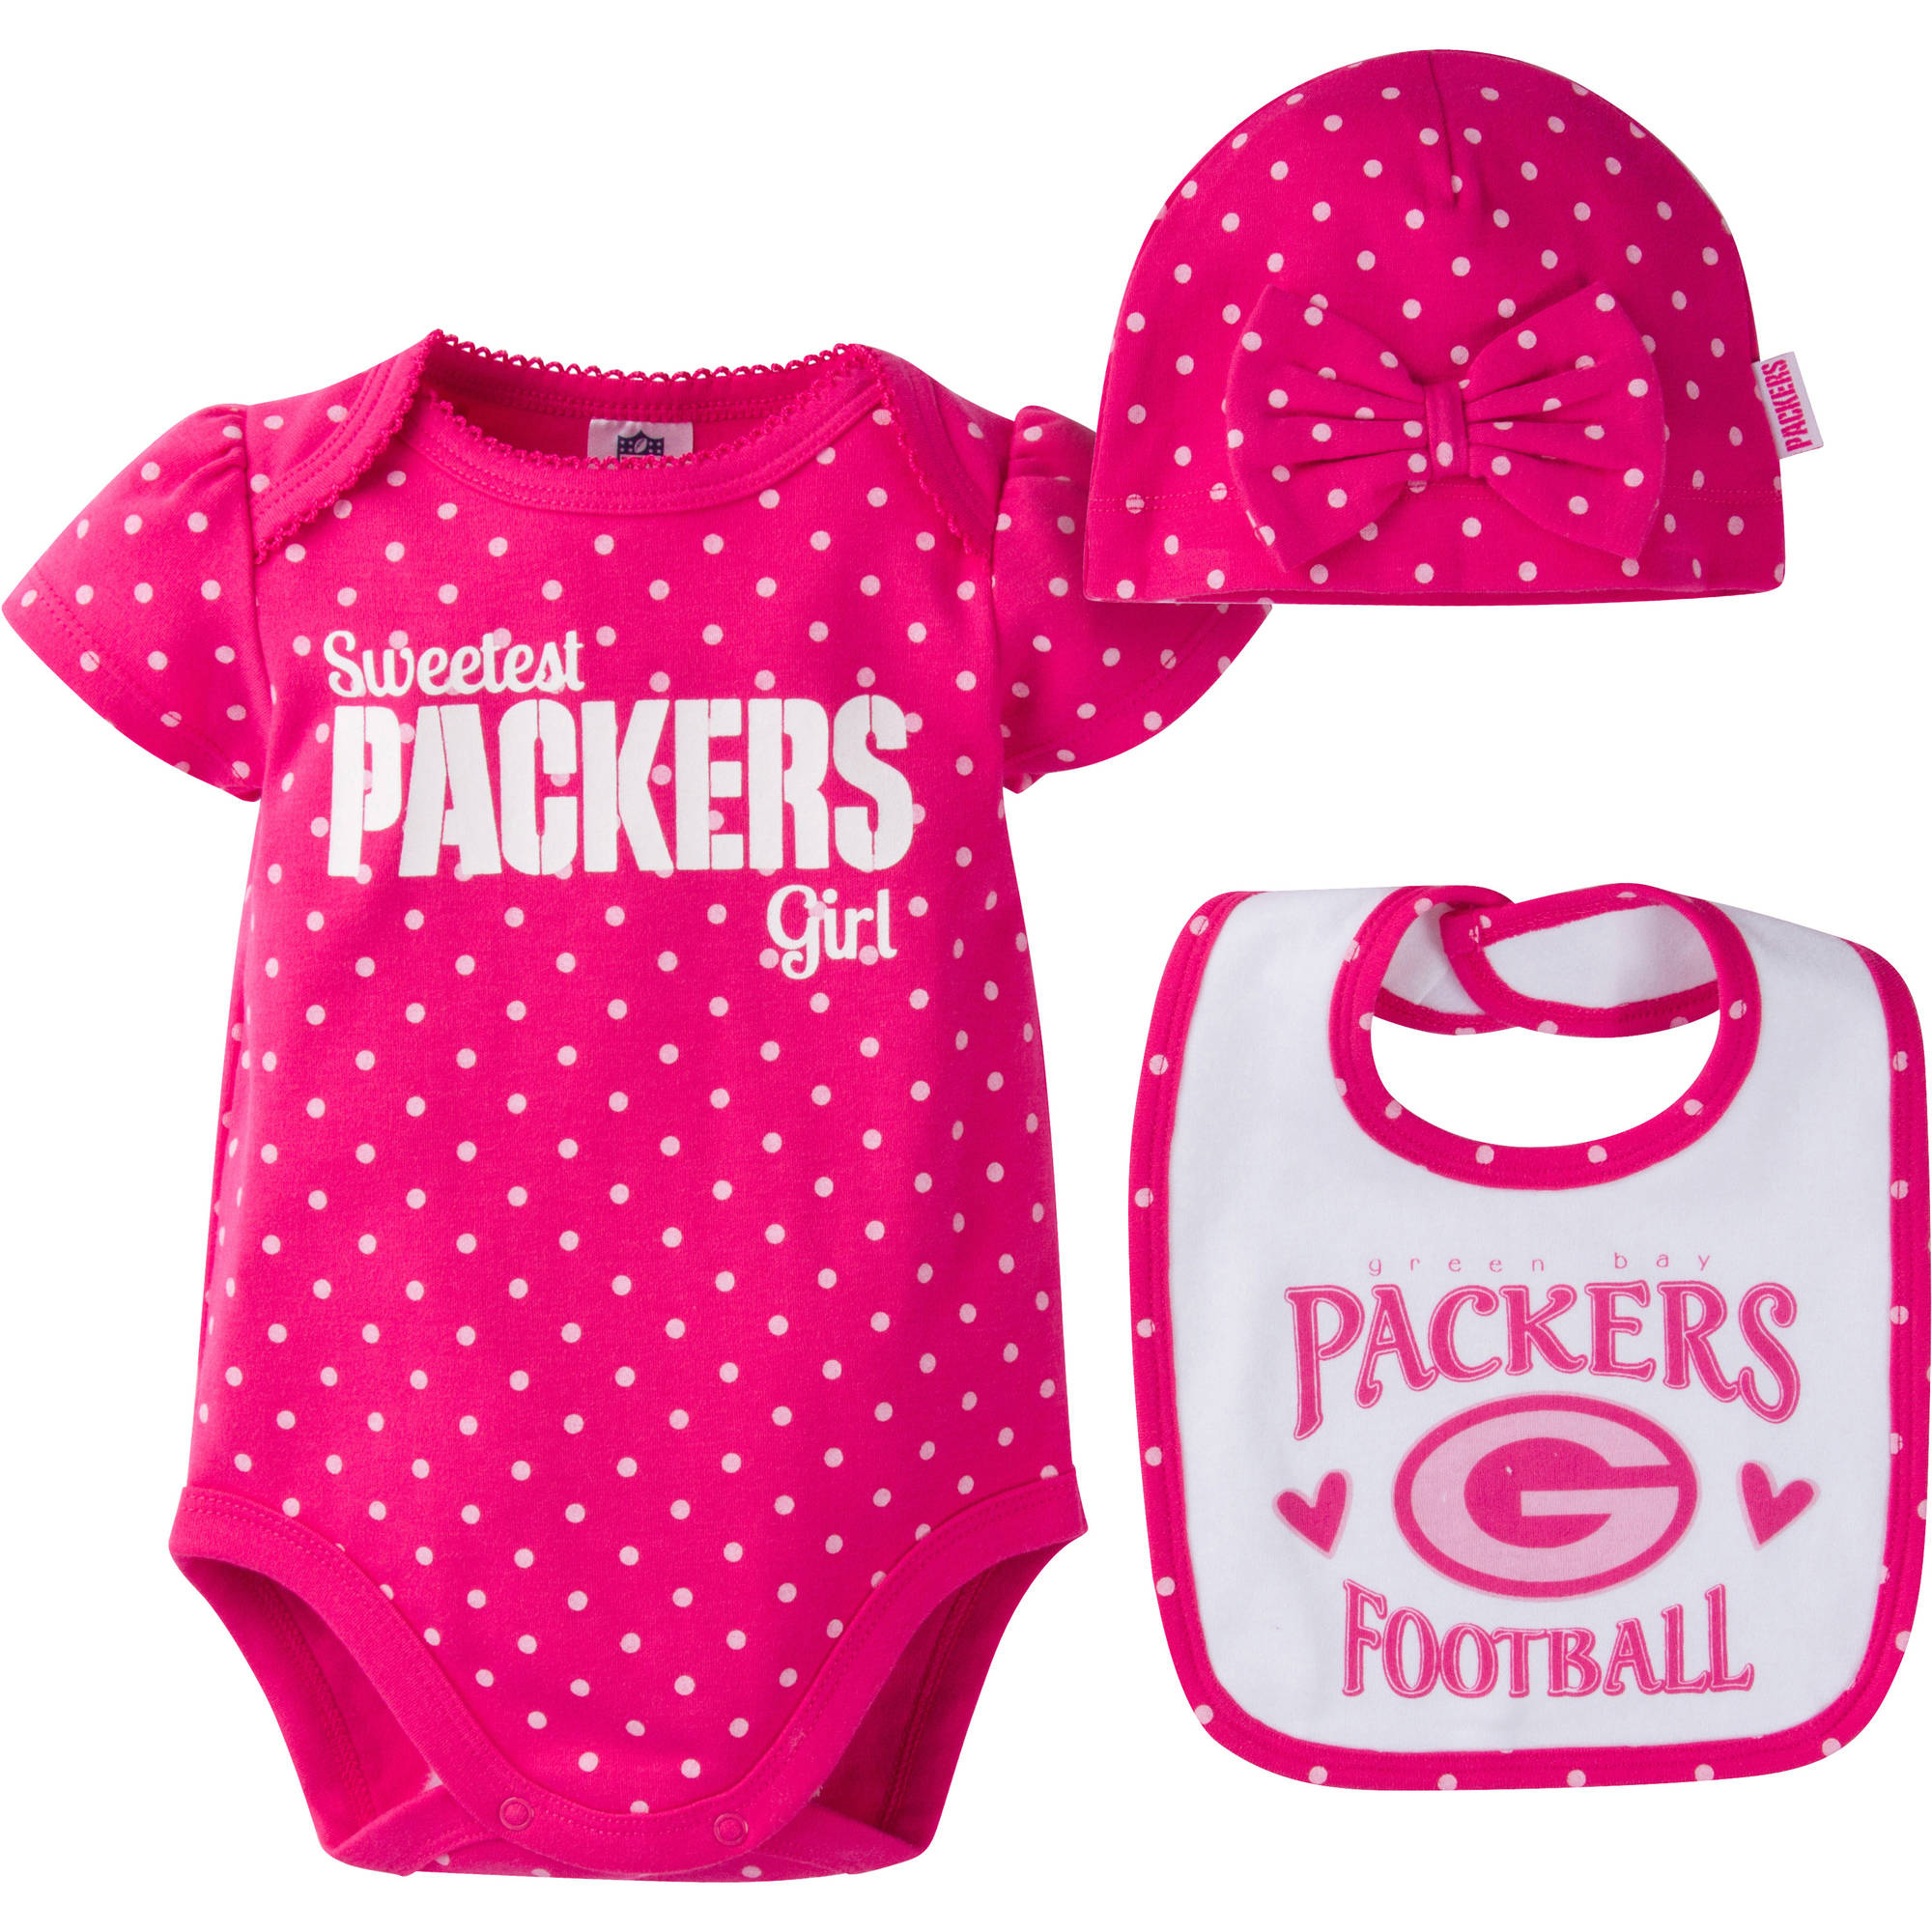 NFL Green Bay Packers Baby Girls Bodysuit, Bib and Cap Outfit Set, 3-Piece by Gerber Childrenswear, LLC